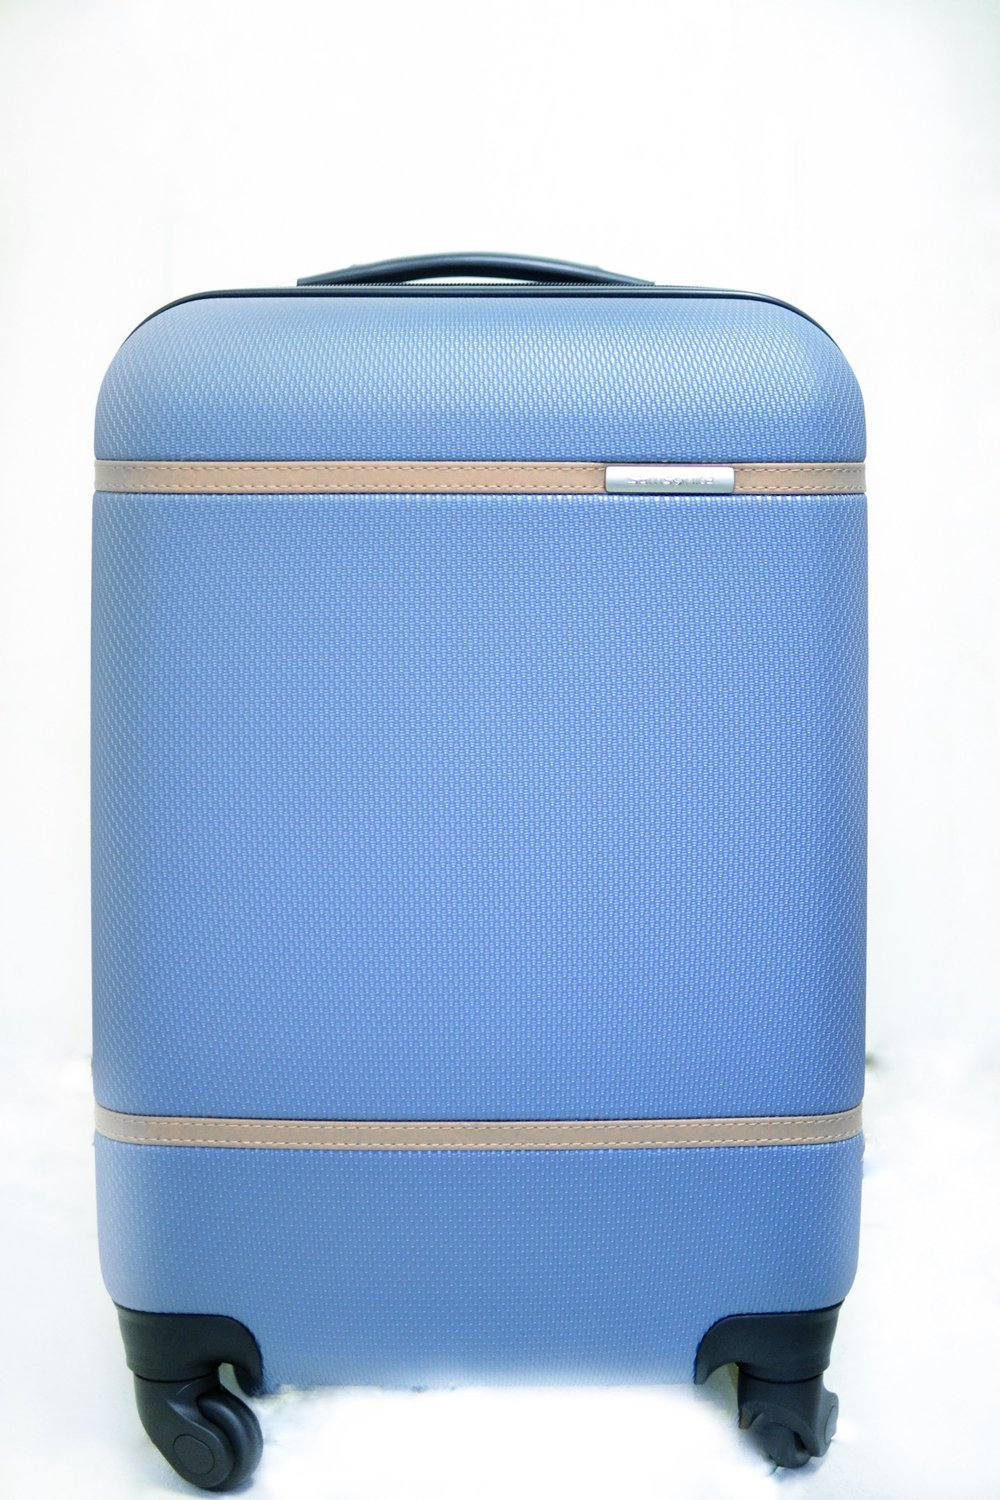 carry-on suitcases for family travel